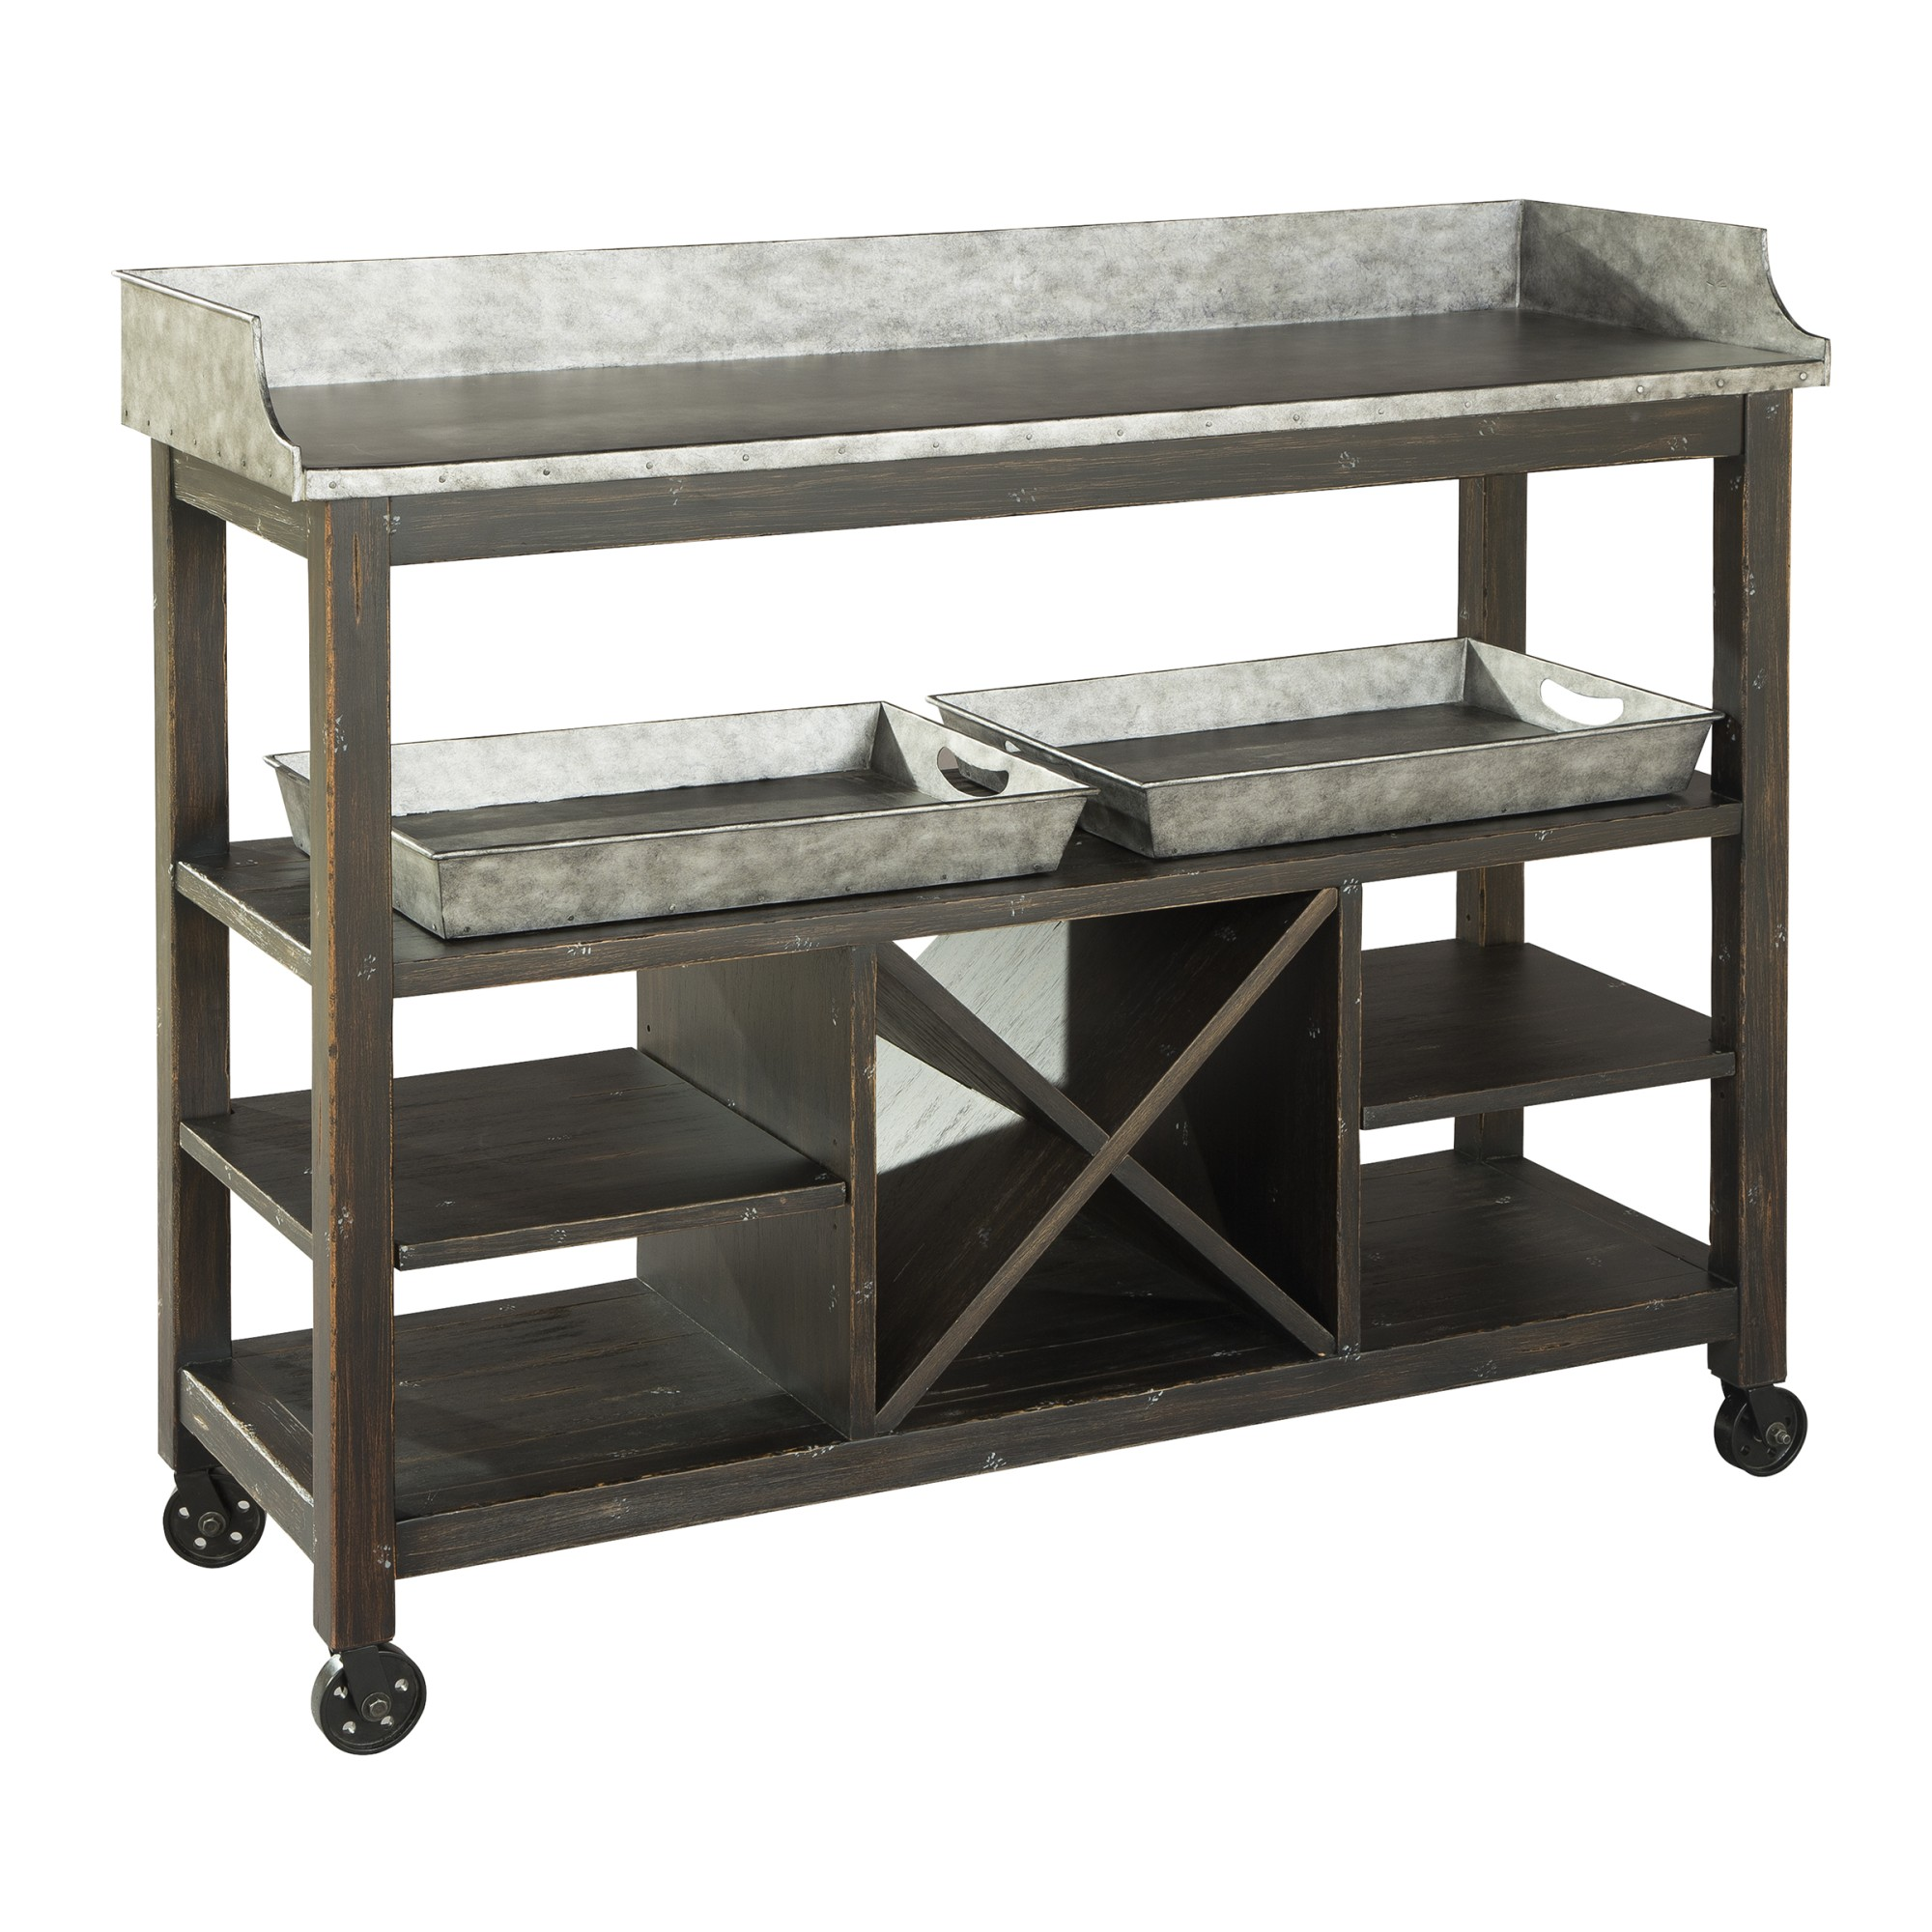 Image for 2-7879 Metal Console/Serving Cart from Hekman Official Website